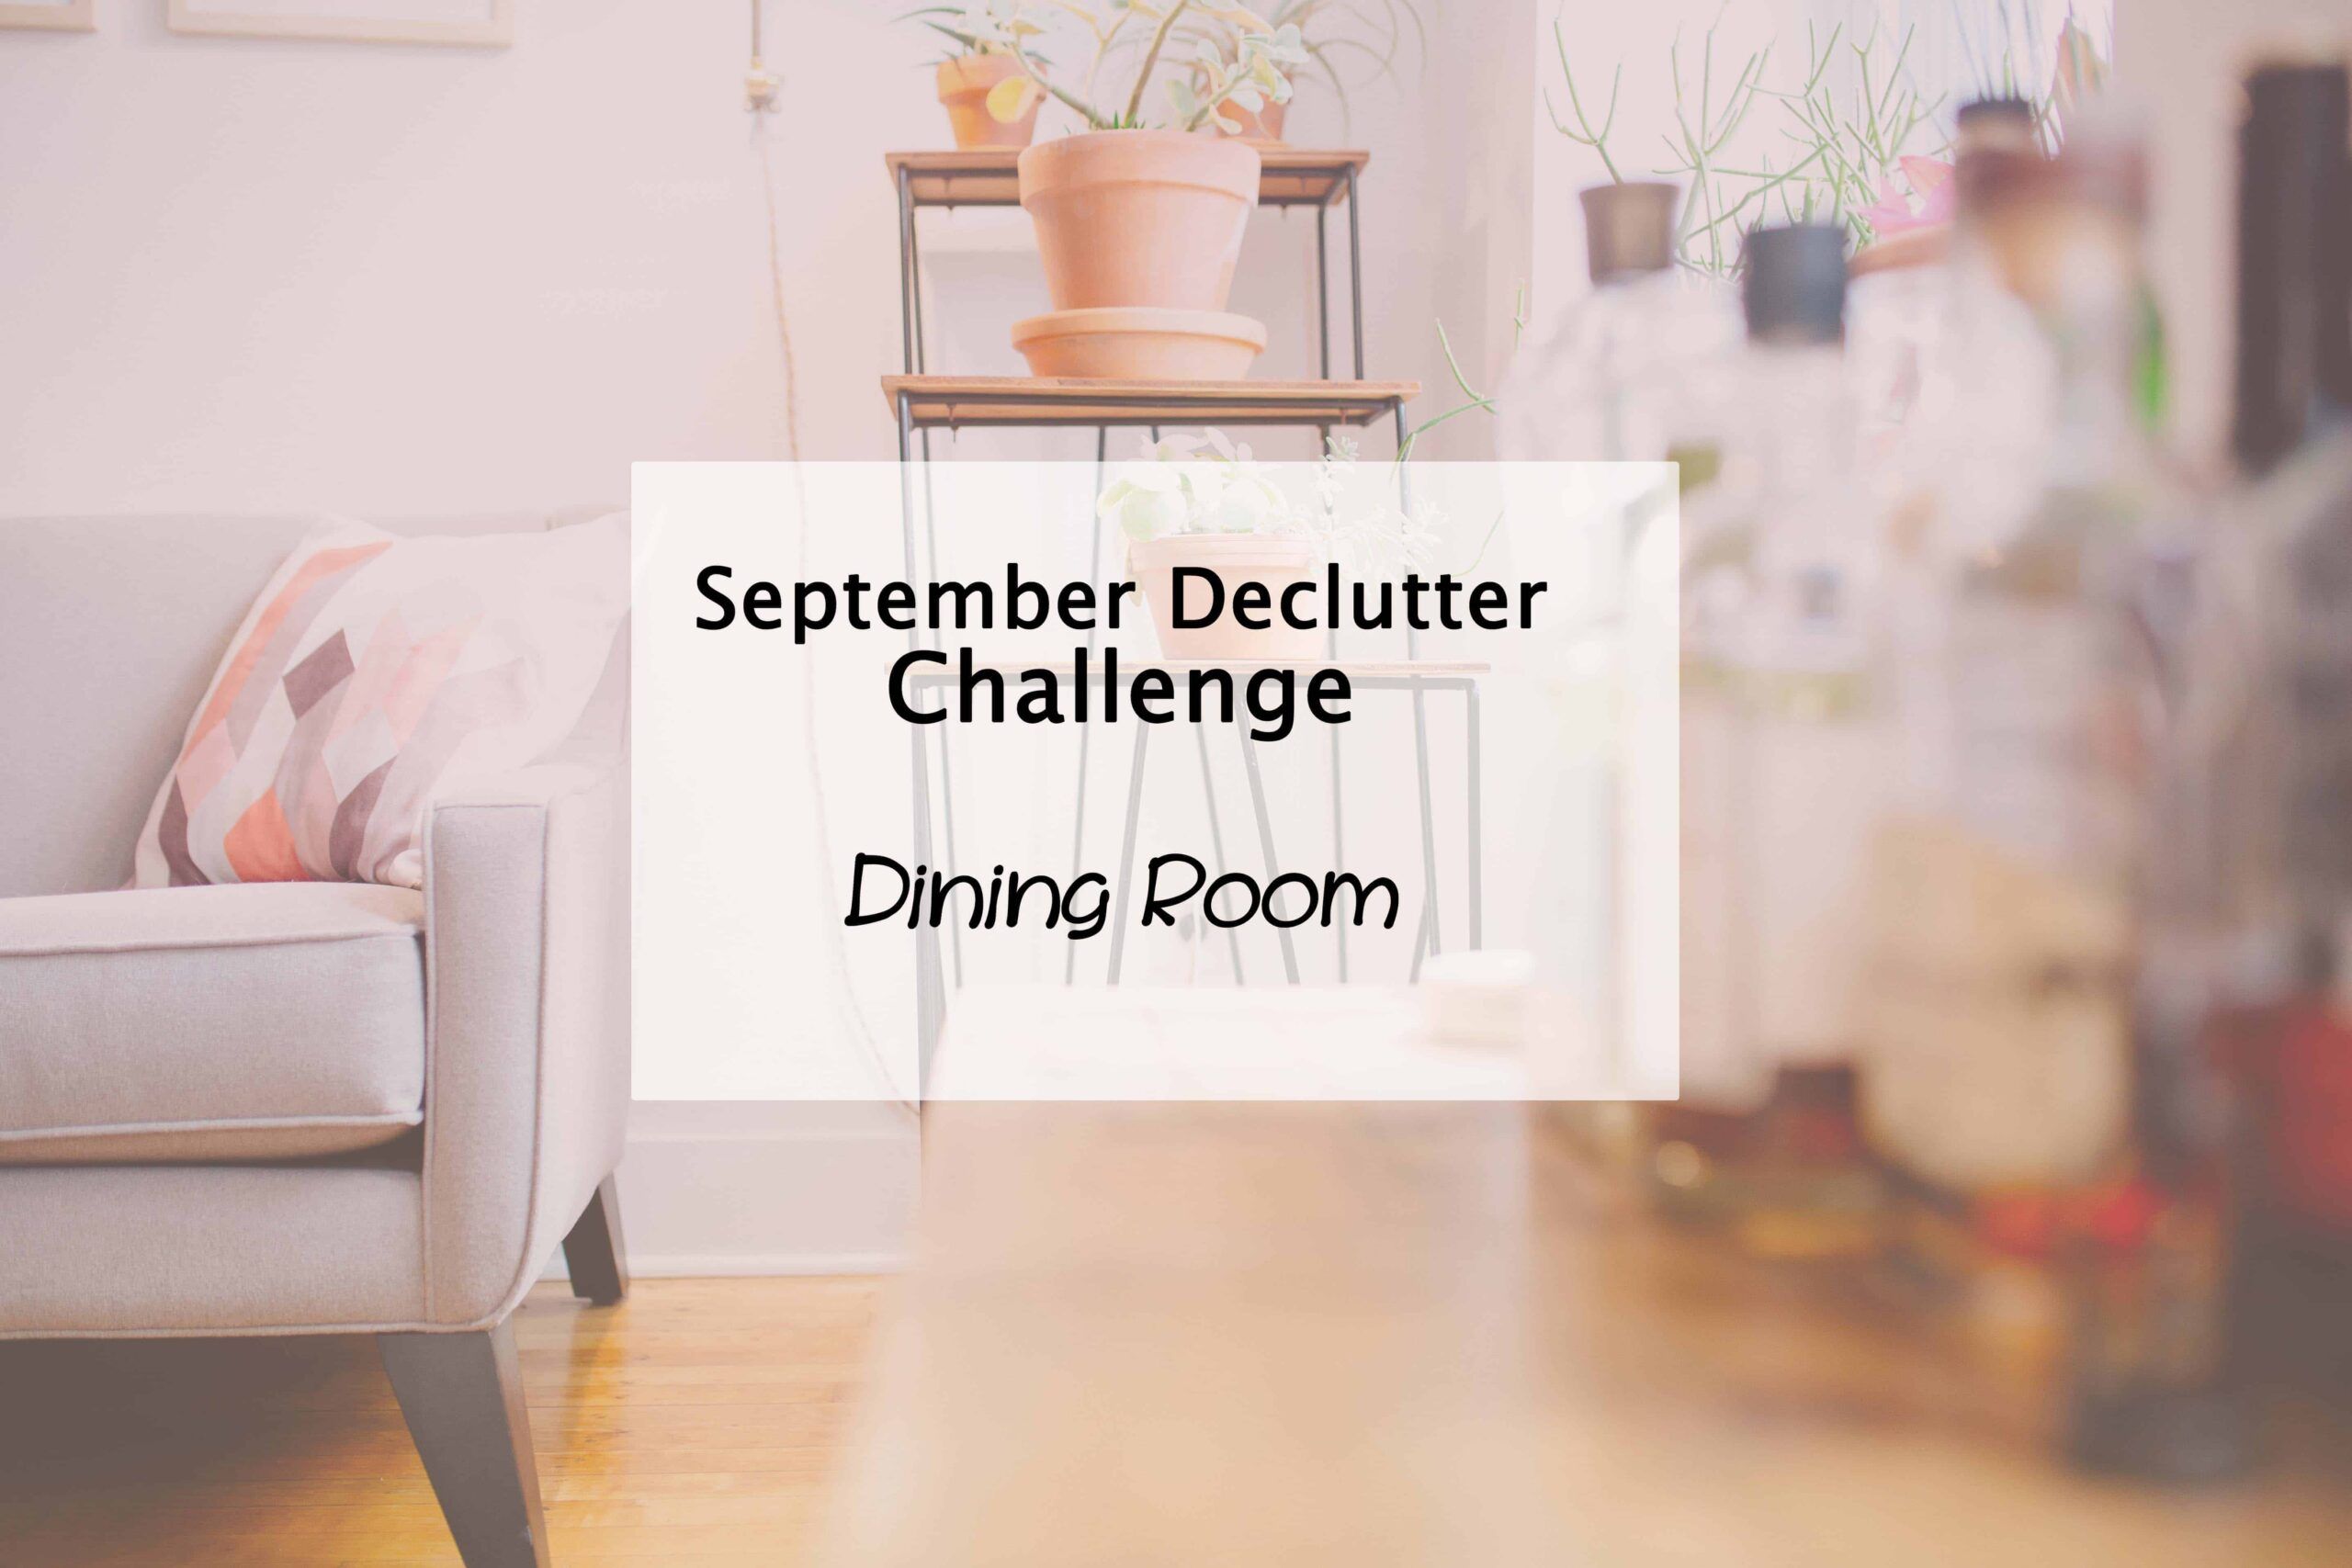 dining room declutter